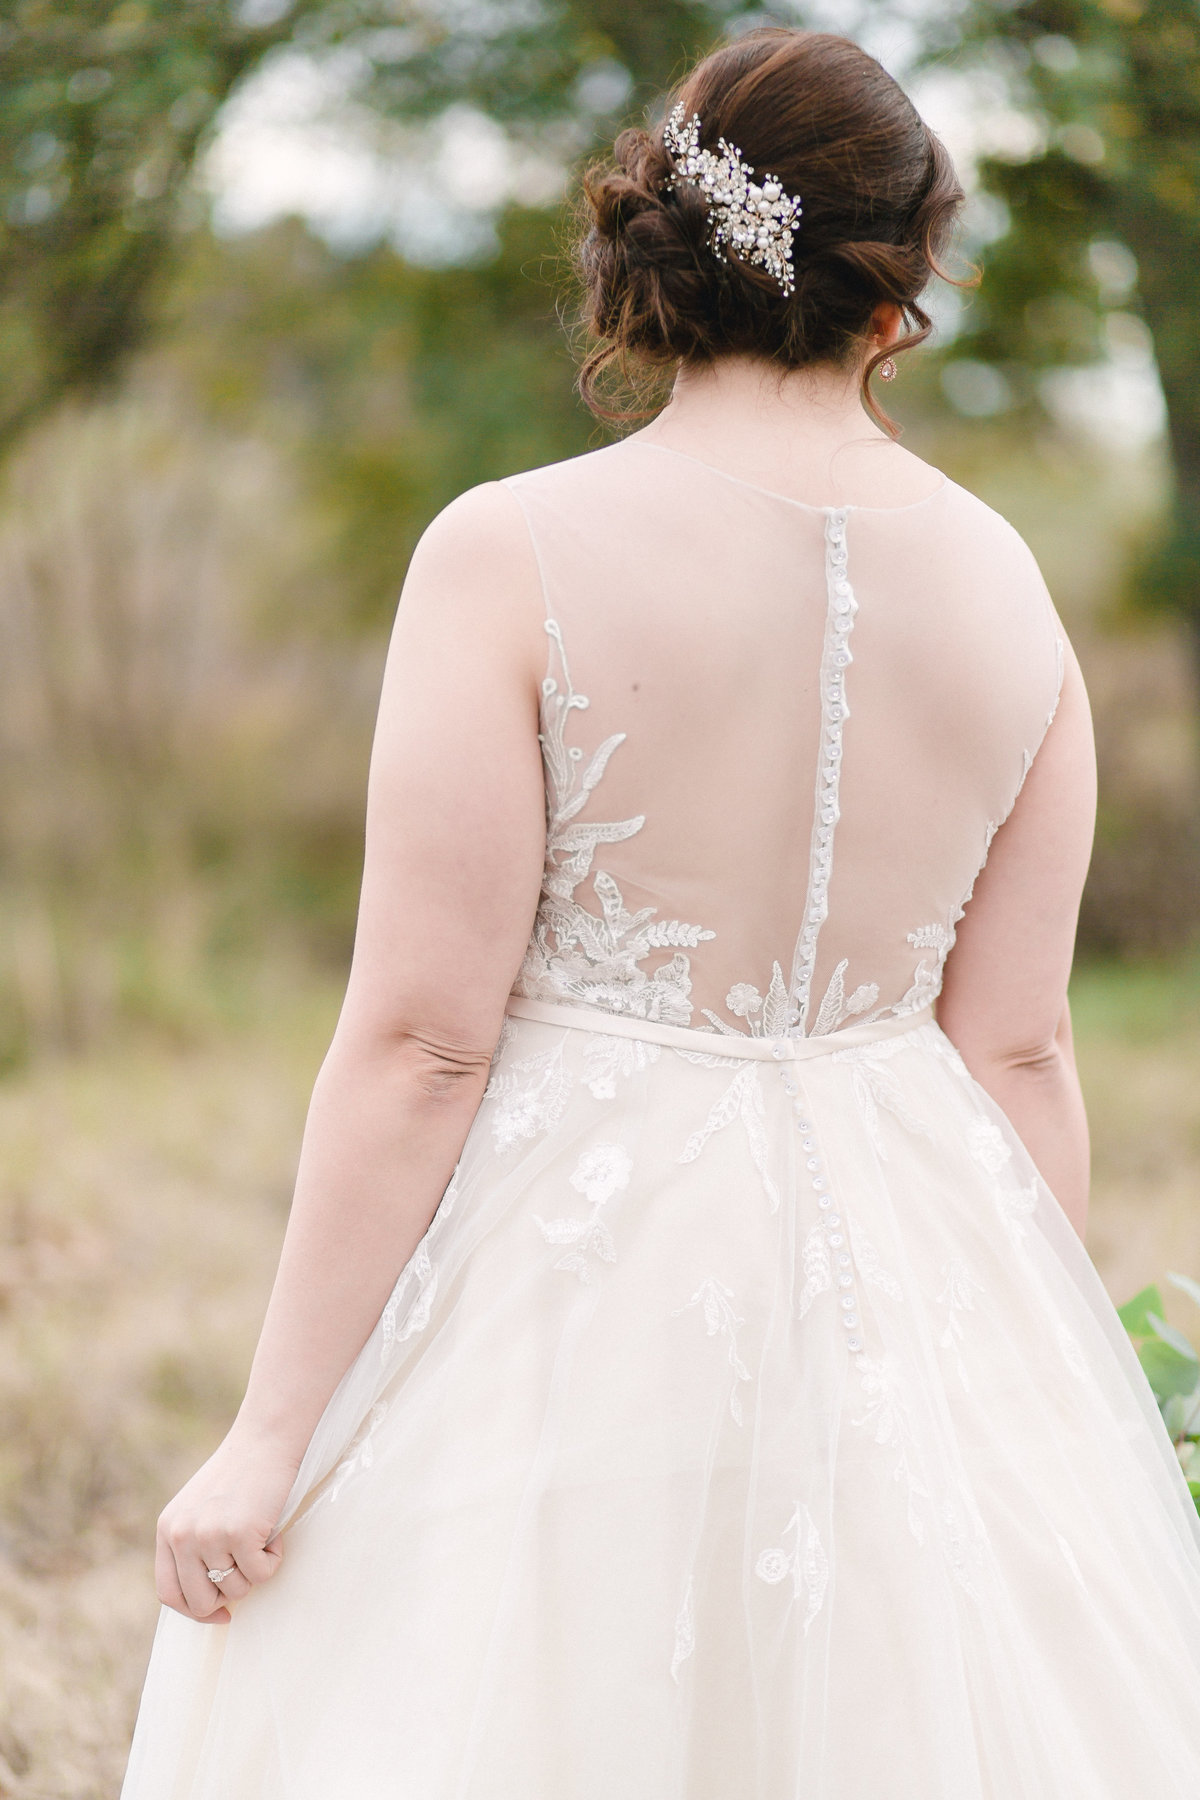 The-woodlands-bridal-session-alicia-yarrish-photography-37